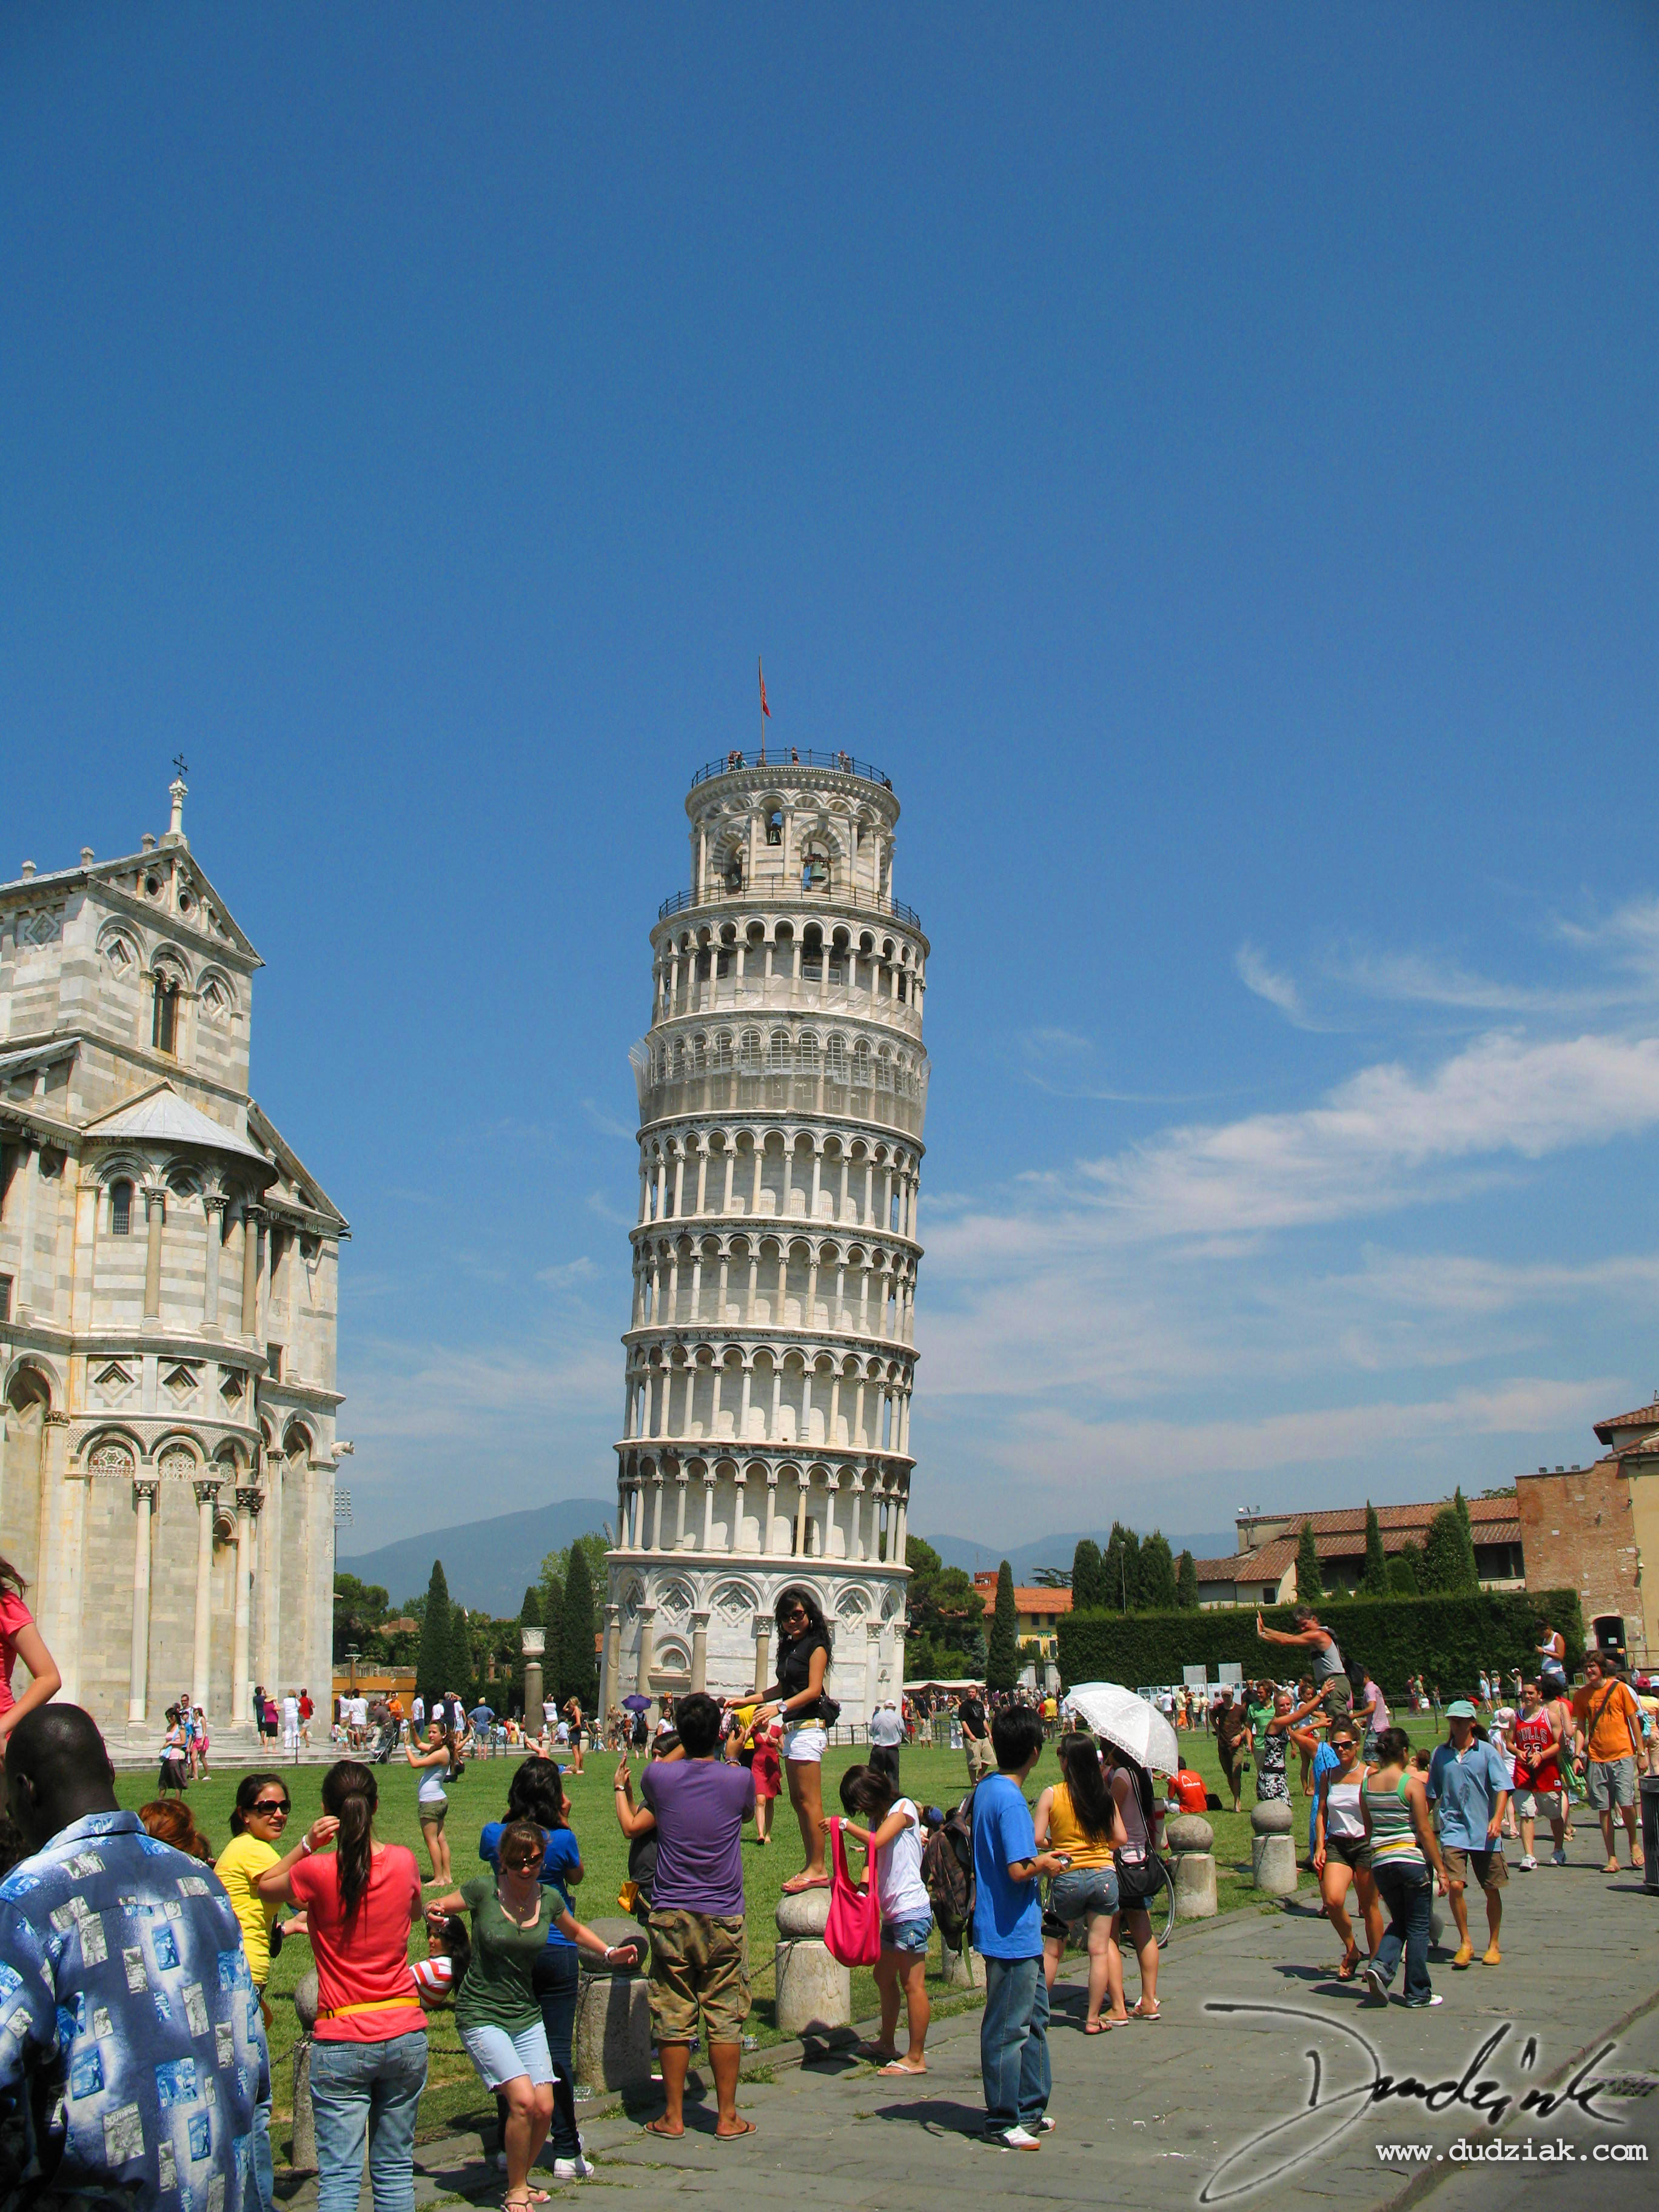 Field of Miracles with the Cathedral of Pisa and the Leaning Tower of Pisa.